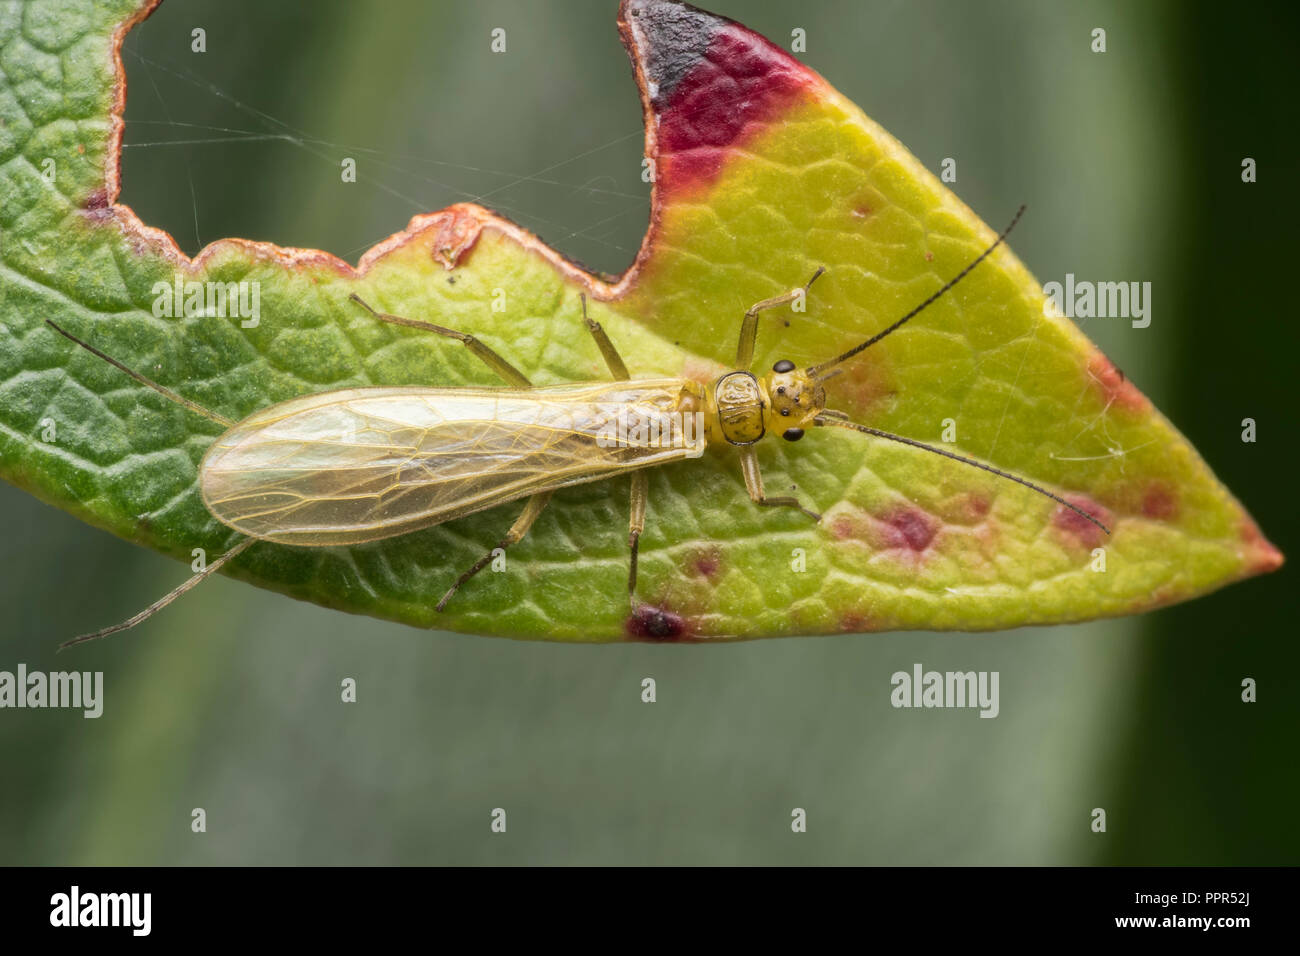 Dorsal view of Stonefly on rhododendron leaf. Tipperary, Ireland - Stock Image